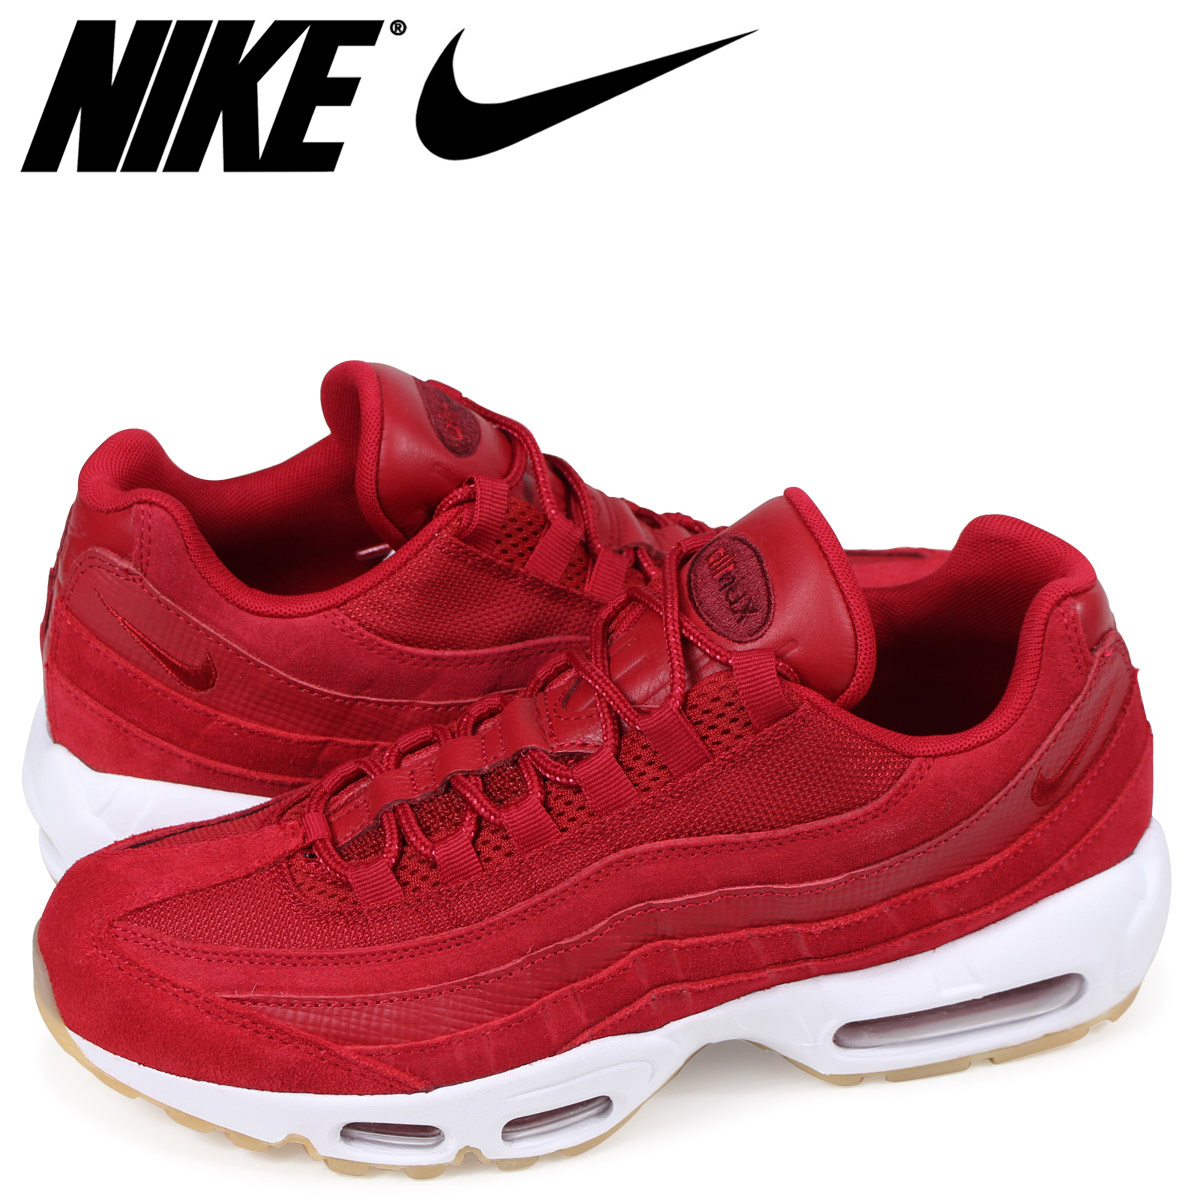 new concept fff2c a6b8b Nike NIKE Air Max 95 sneakers men AIR MAX 95 PREMIUM 538,416-602 red